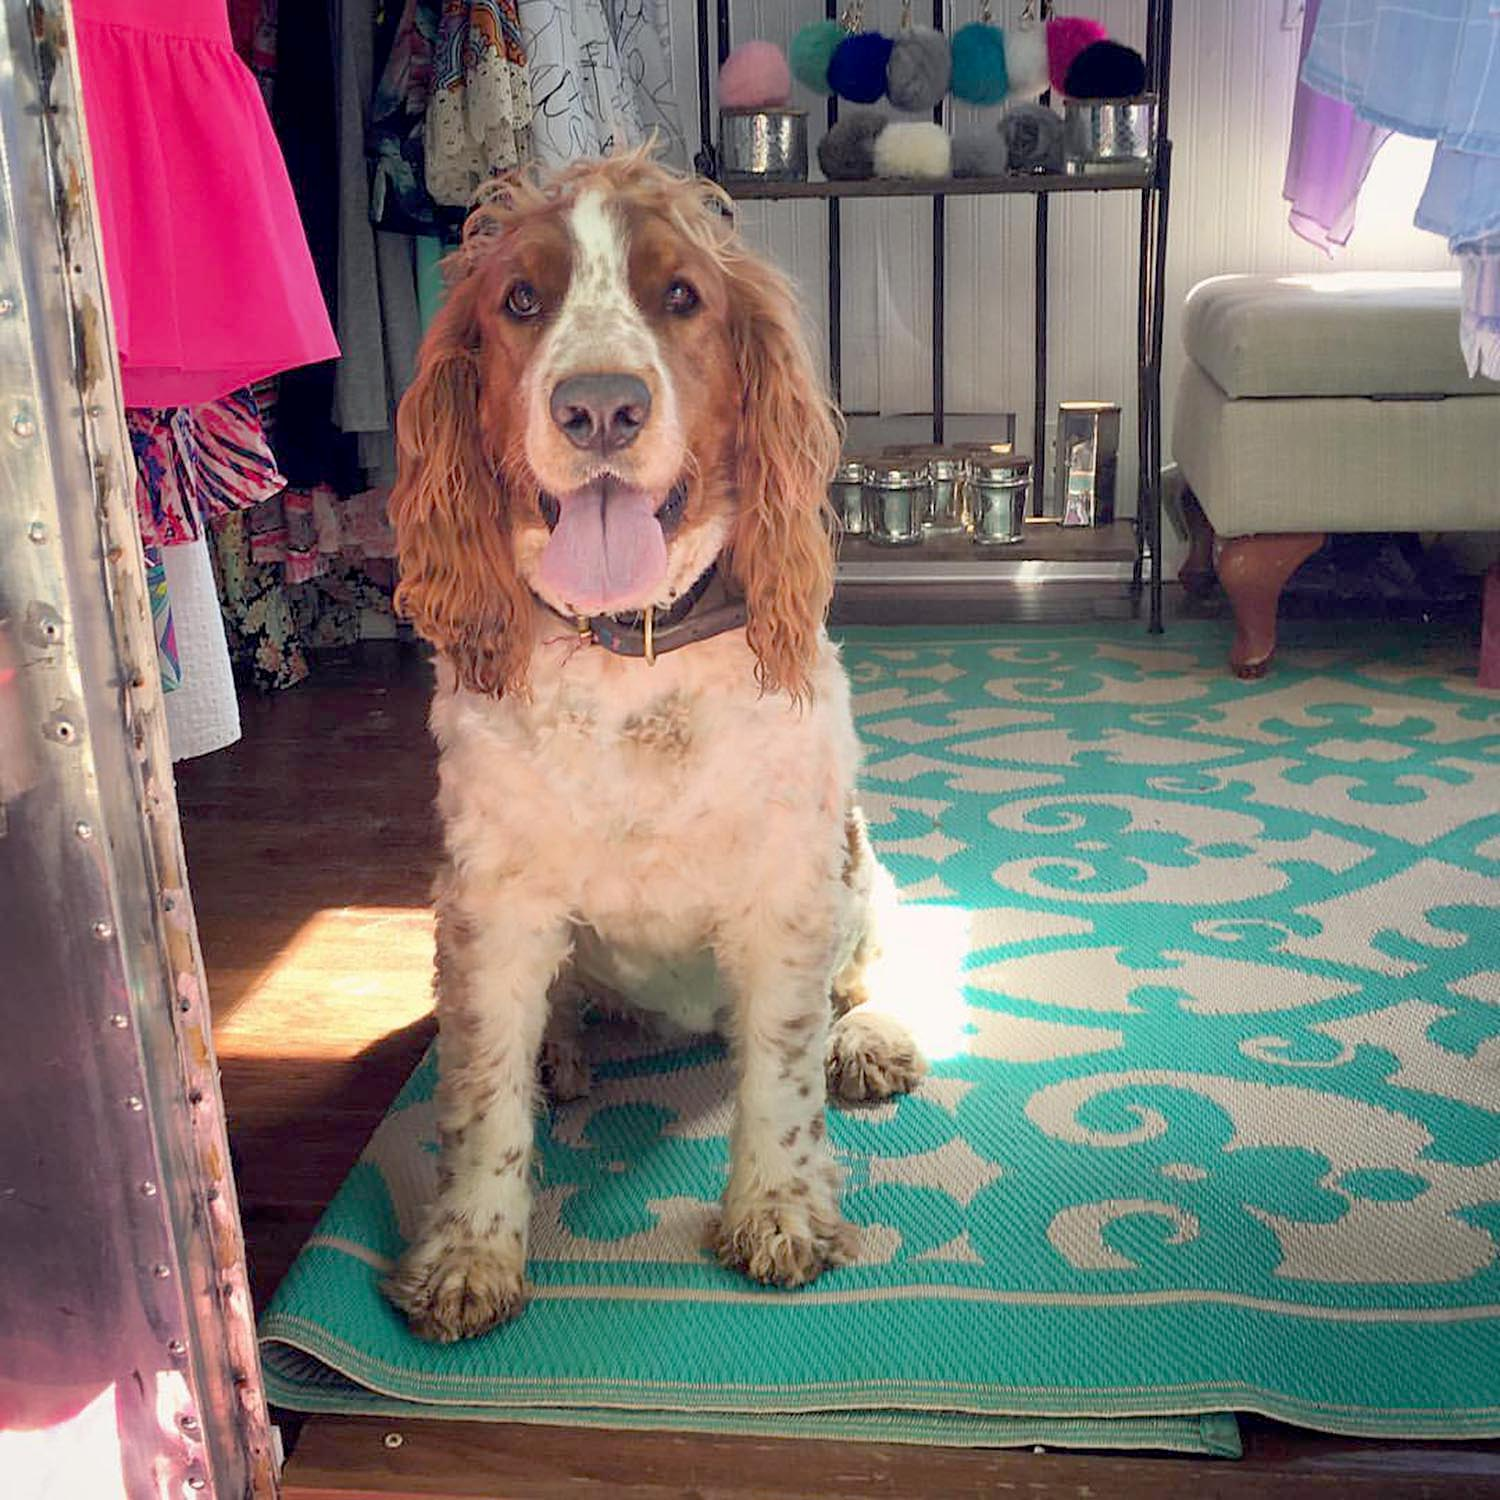 We love our sweet shop dog!